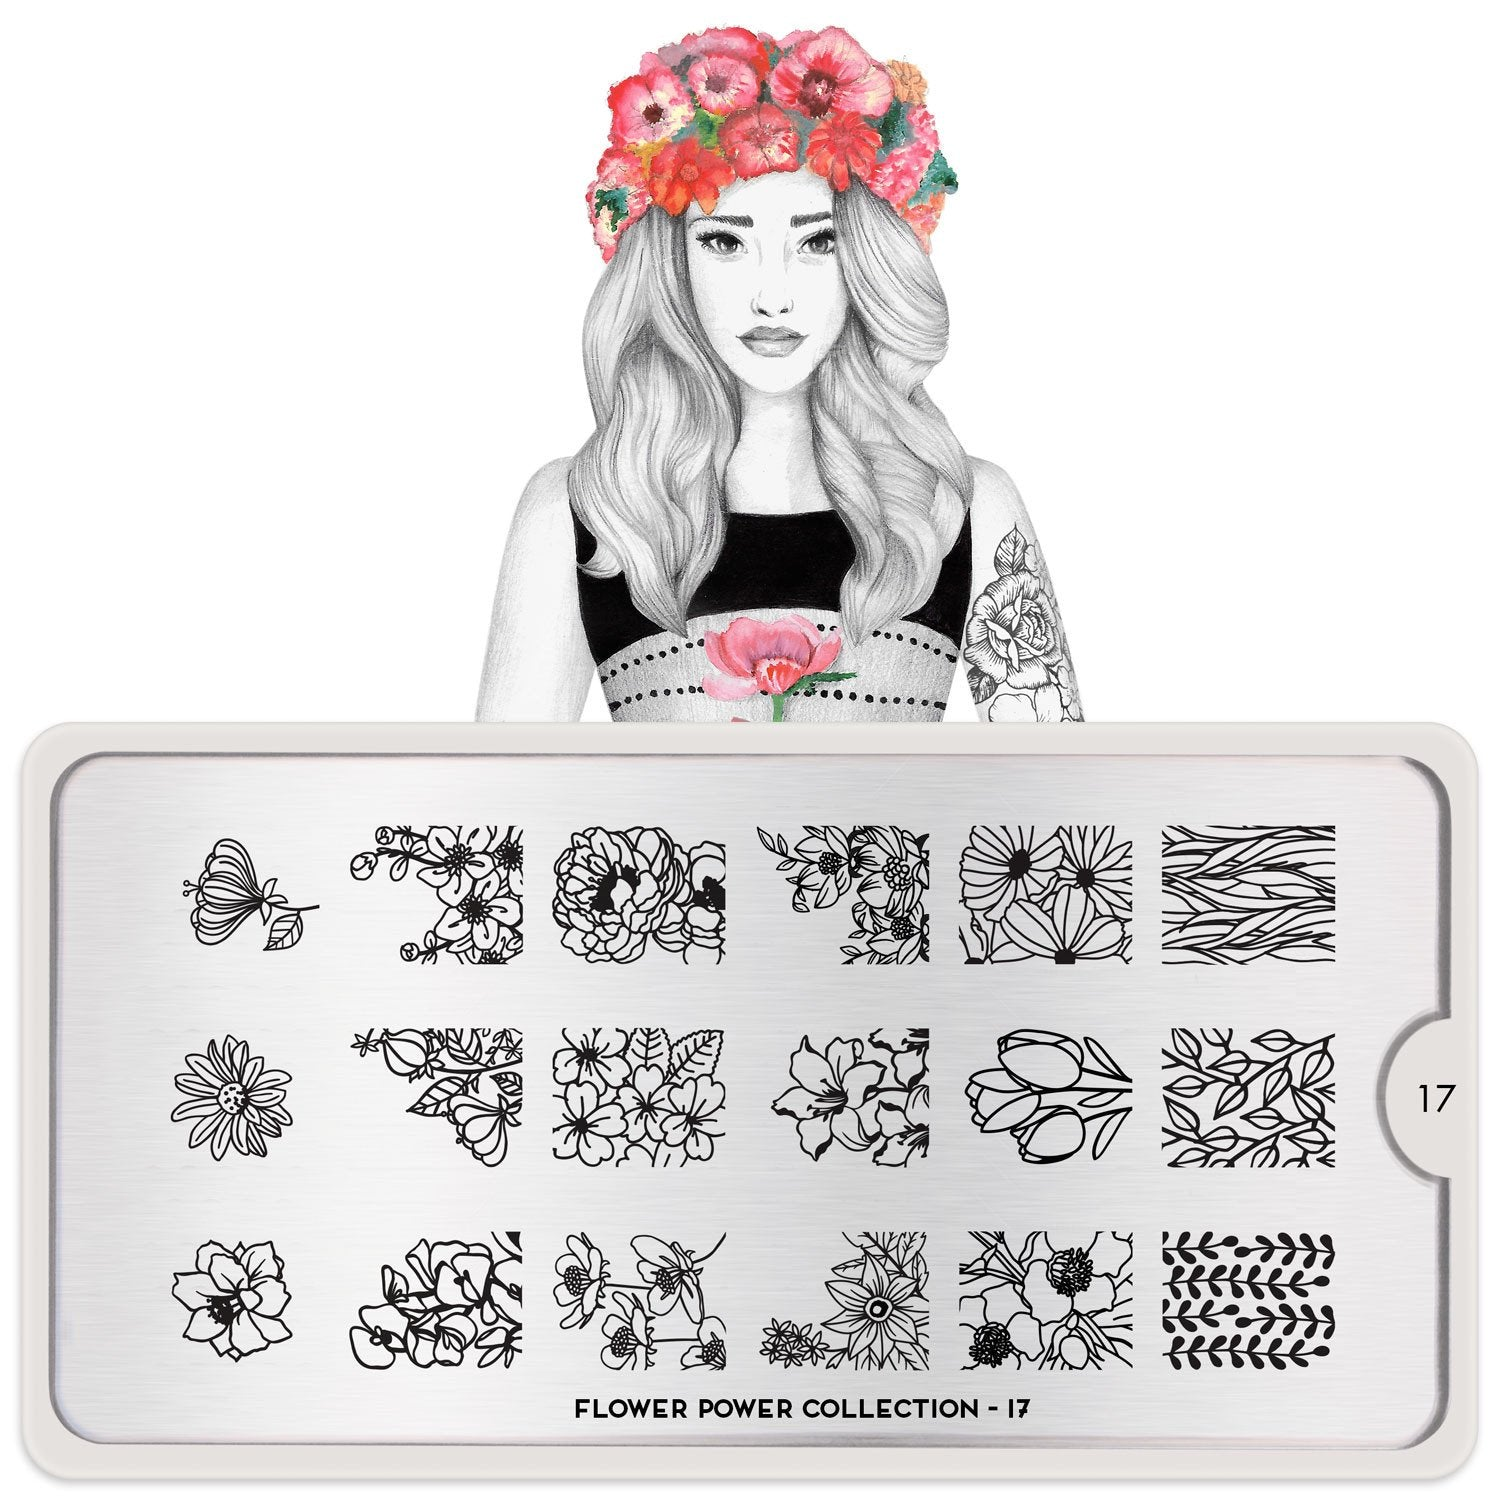 MoYou London Flower Power 17 stamping plate